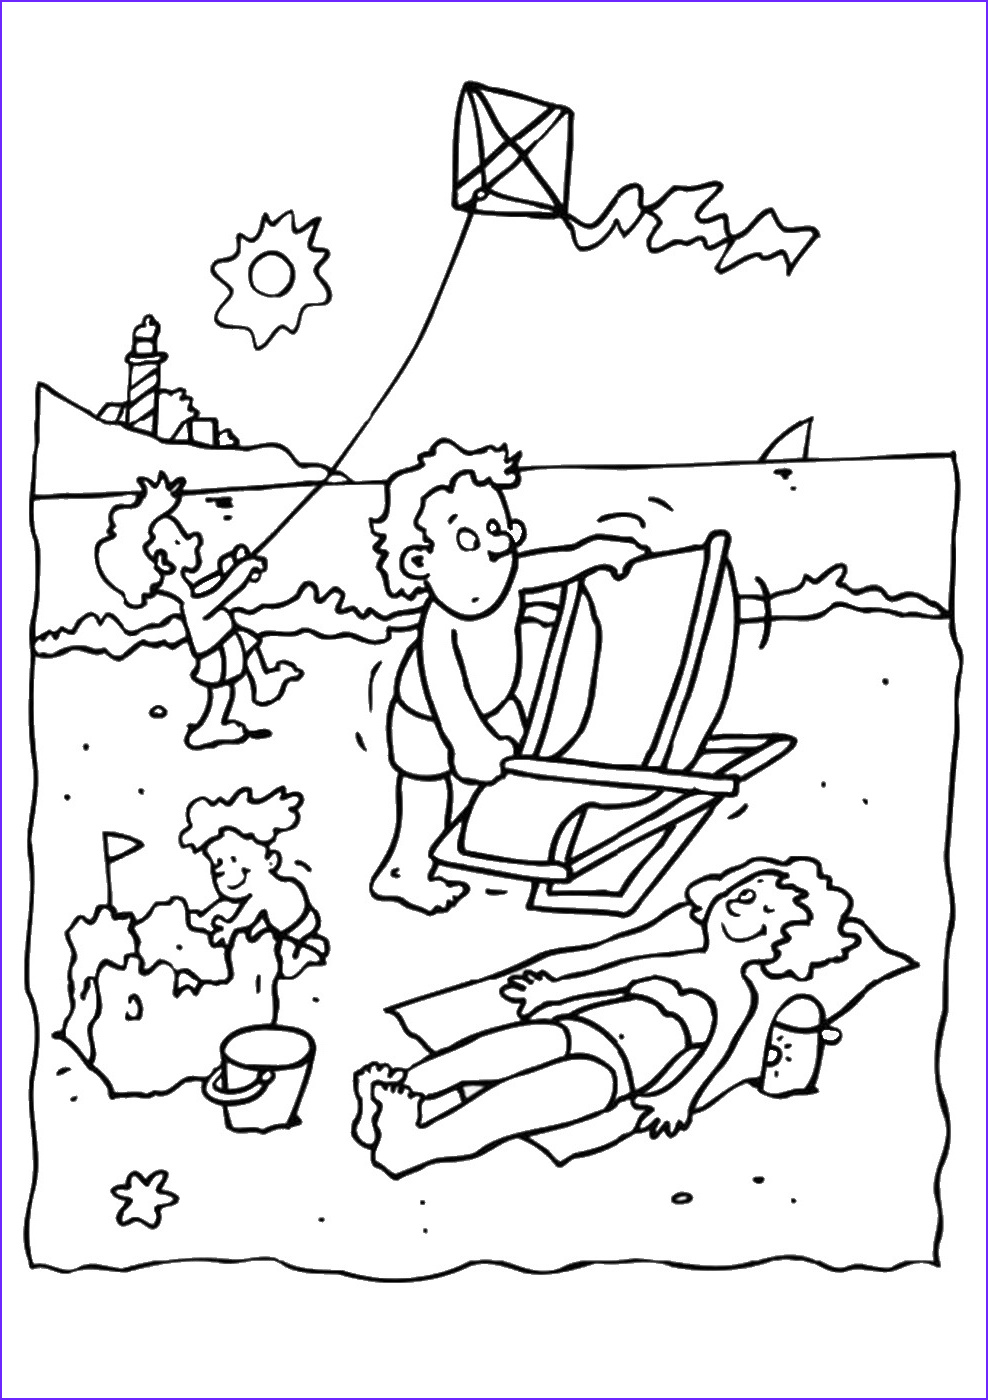 Holidays Coloring Book Elegant Images Summer Holiday Coloring Pages